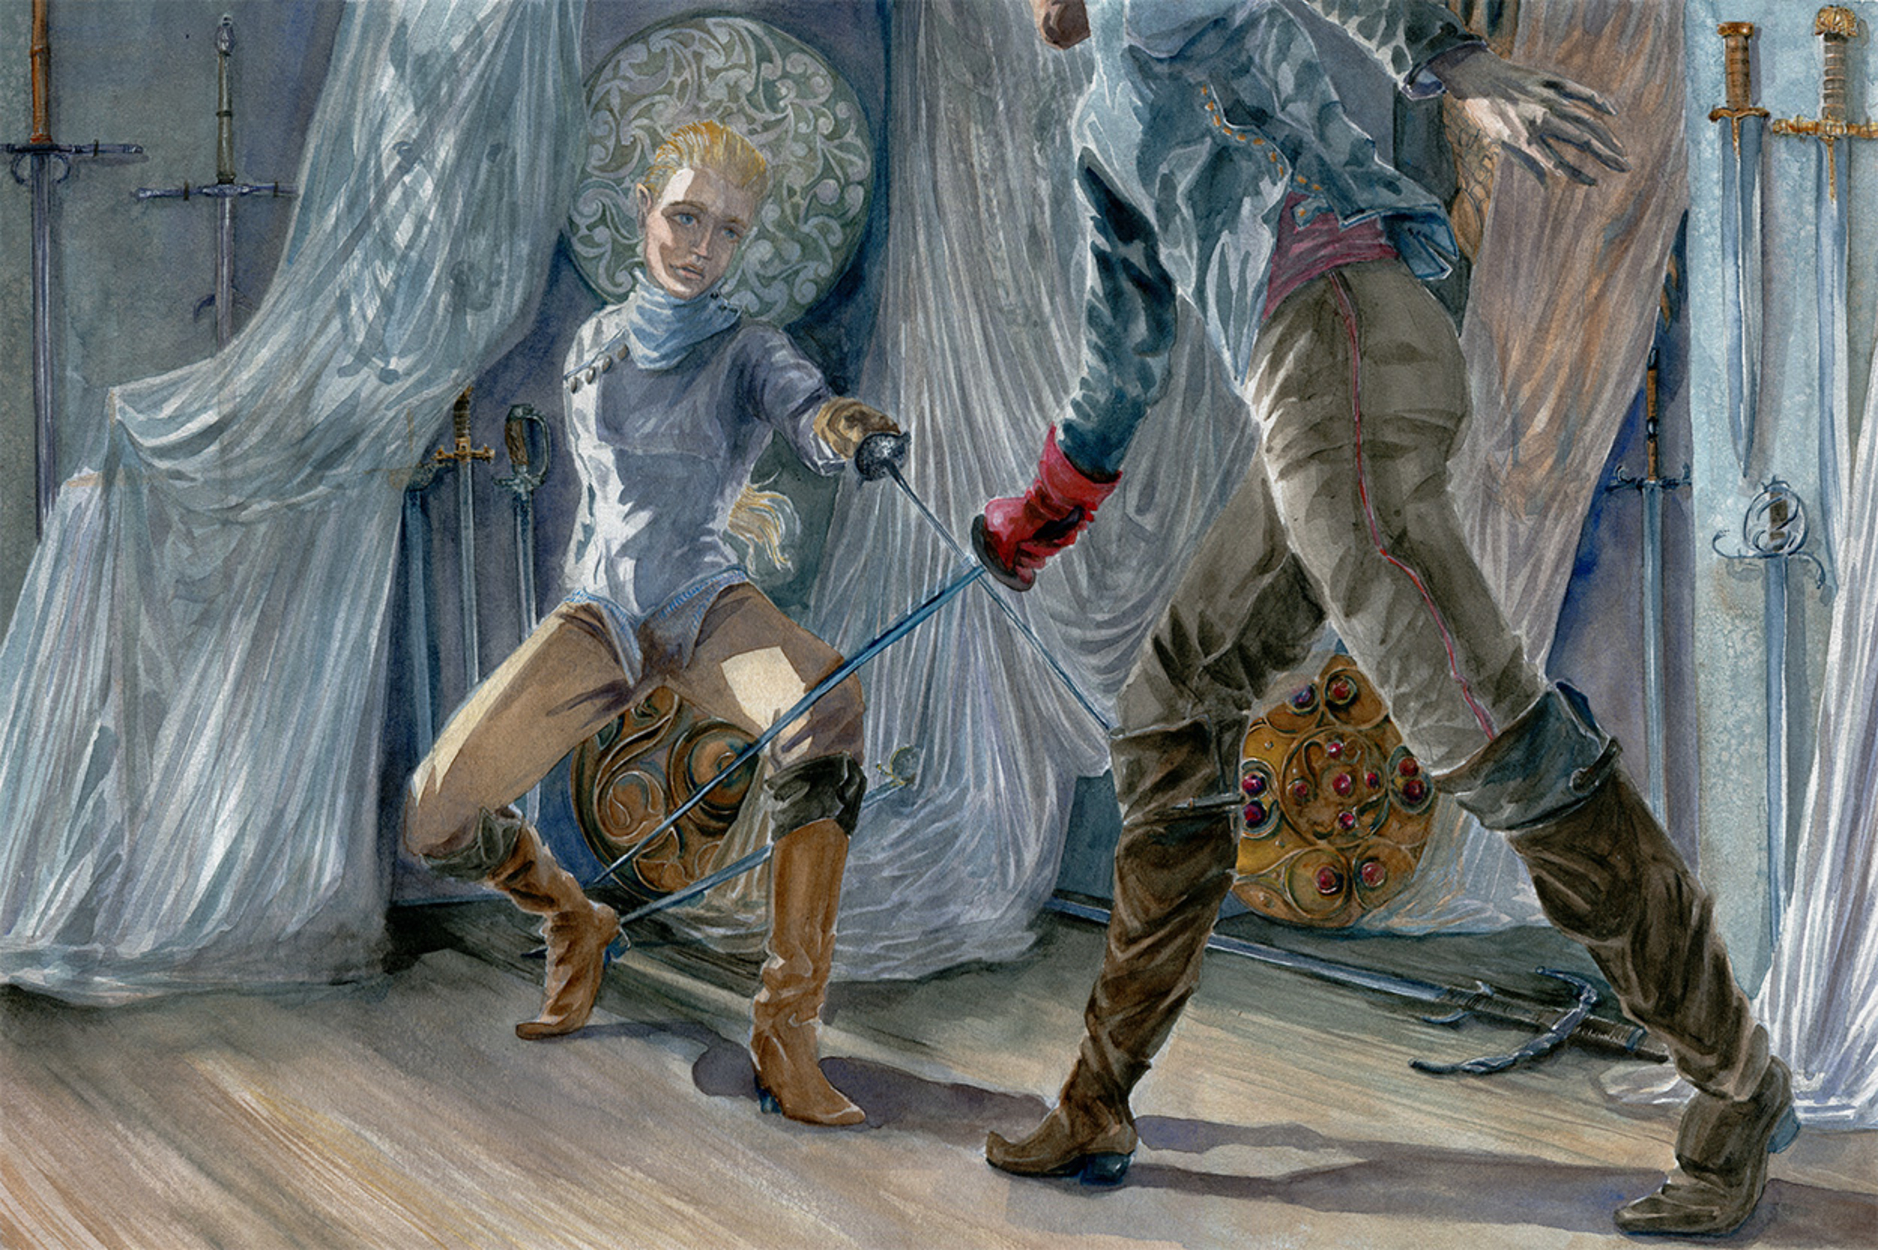 Fencers Artwork by Clare Henry McCanna